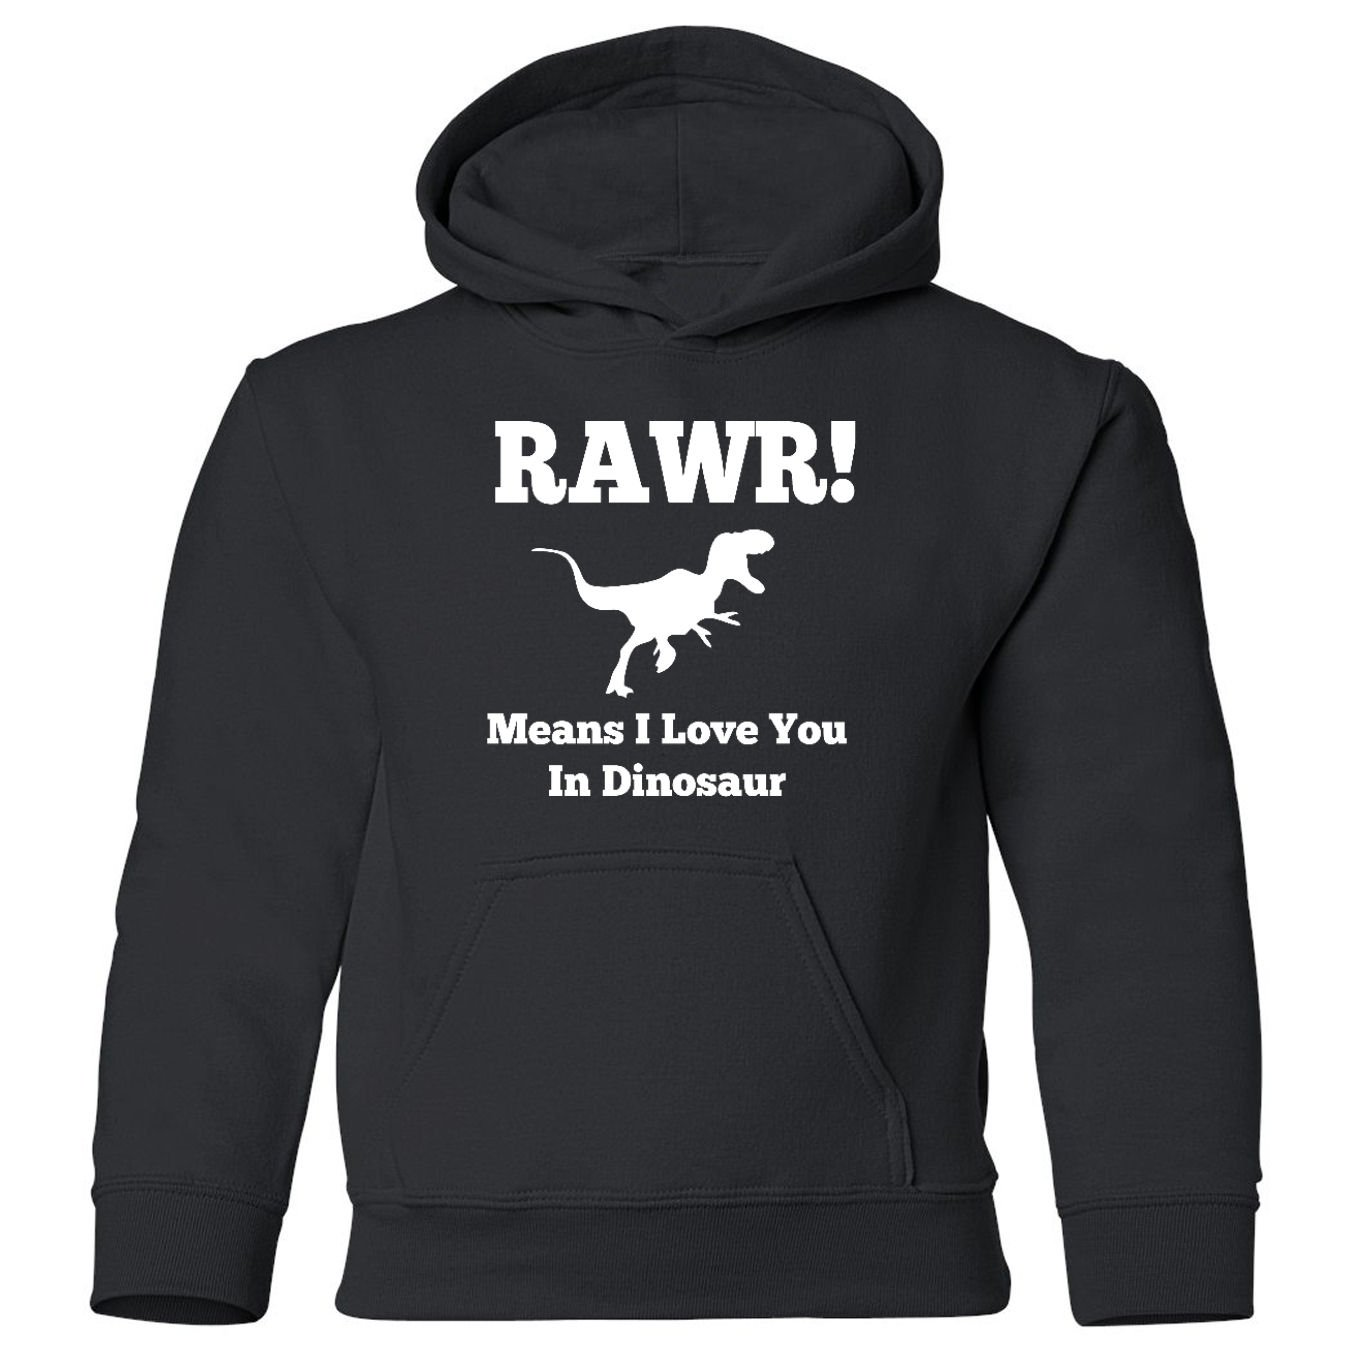 Means Love You In Dinosaur Funny Toddler Hooded Sweatshirt Mashed Clothing RAWR